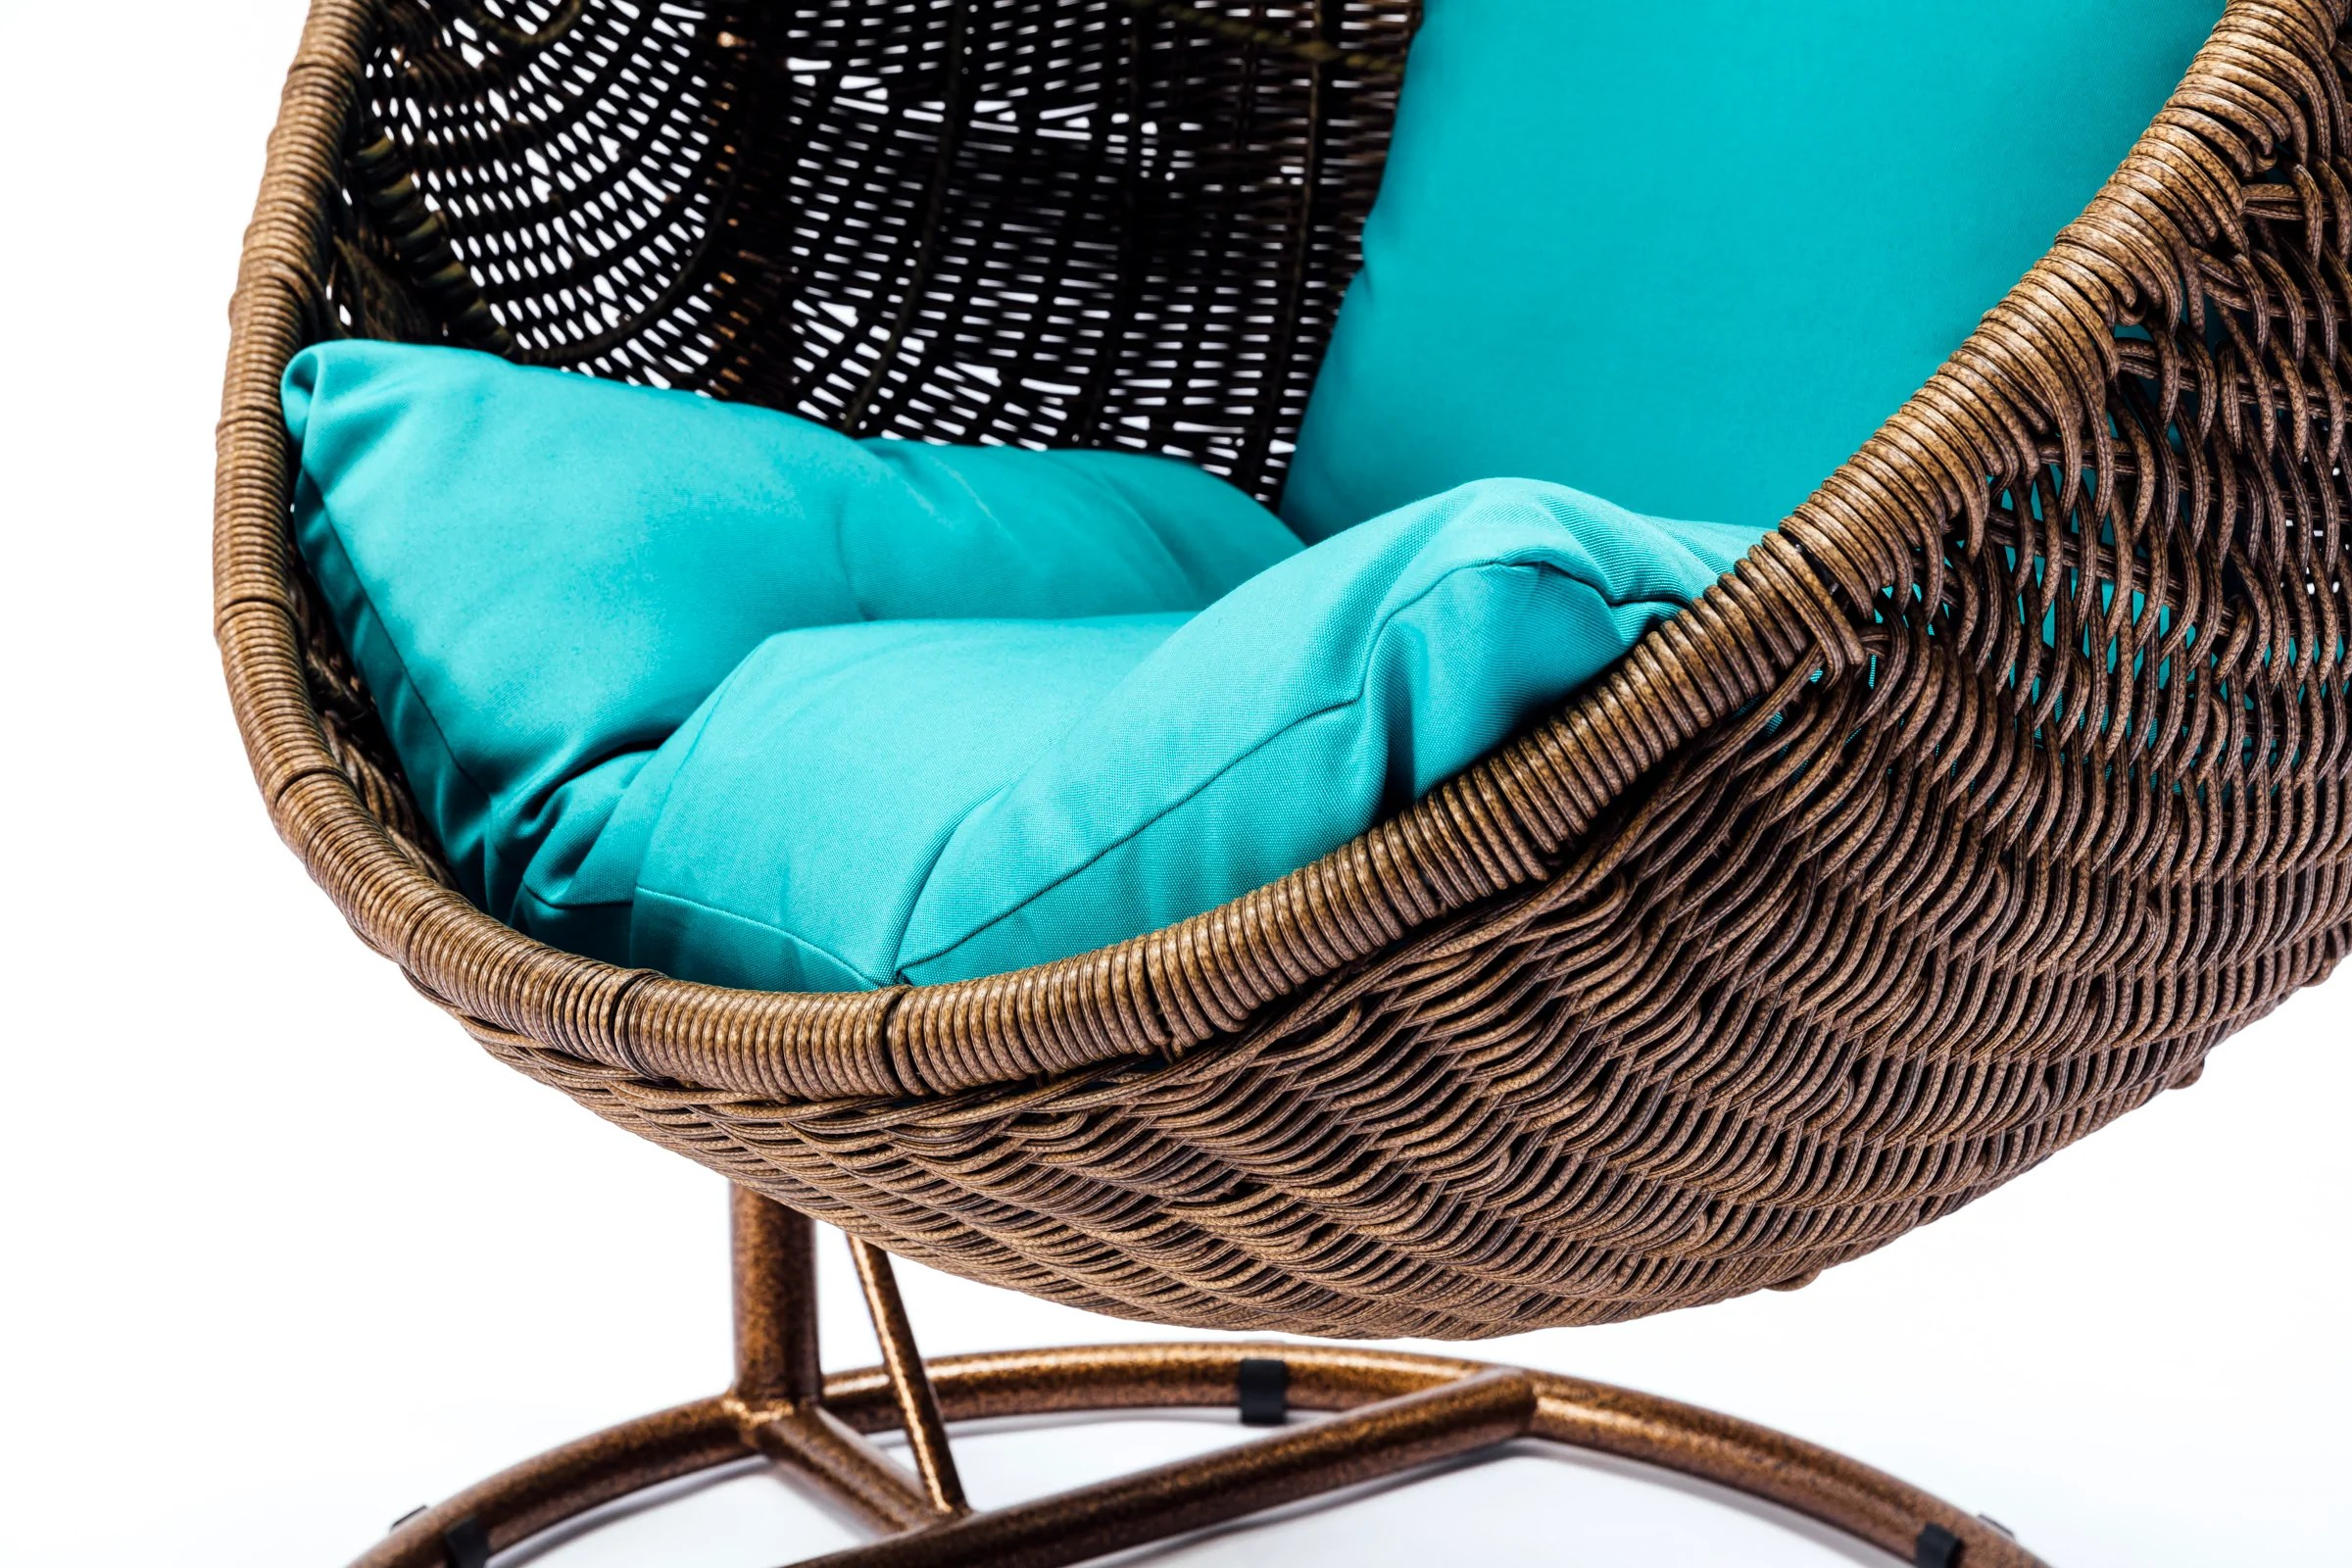 Egg Wicker Chair Wicker Egg Swing Chair